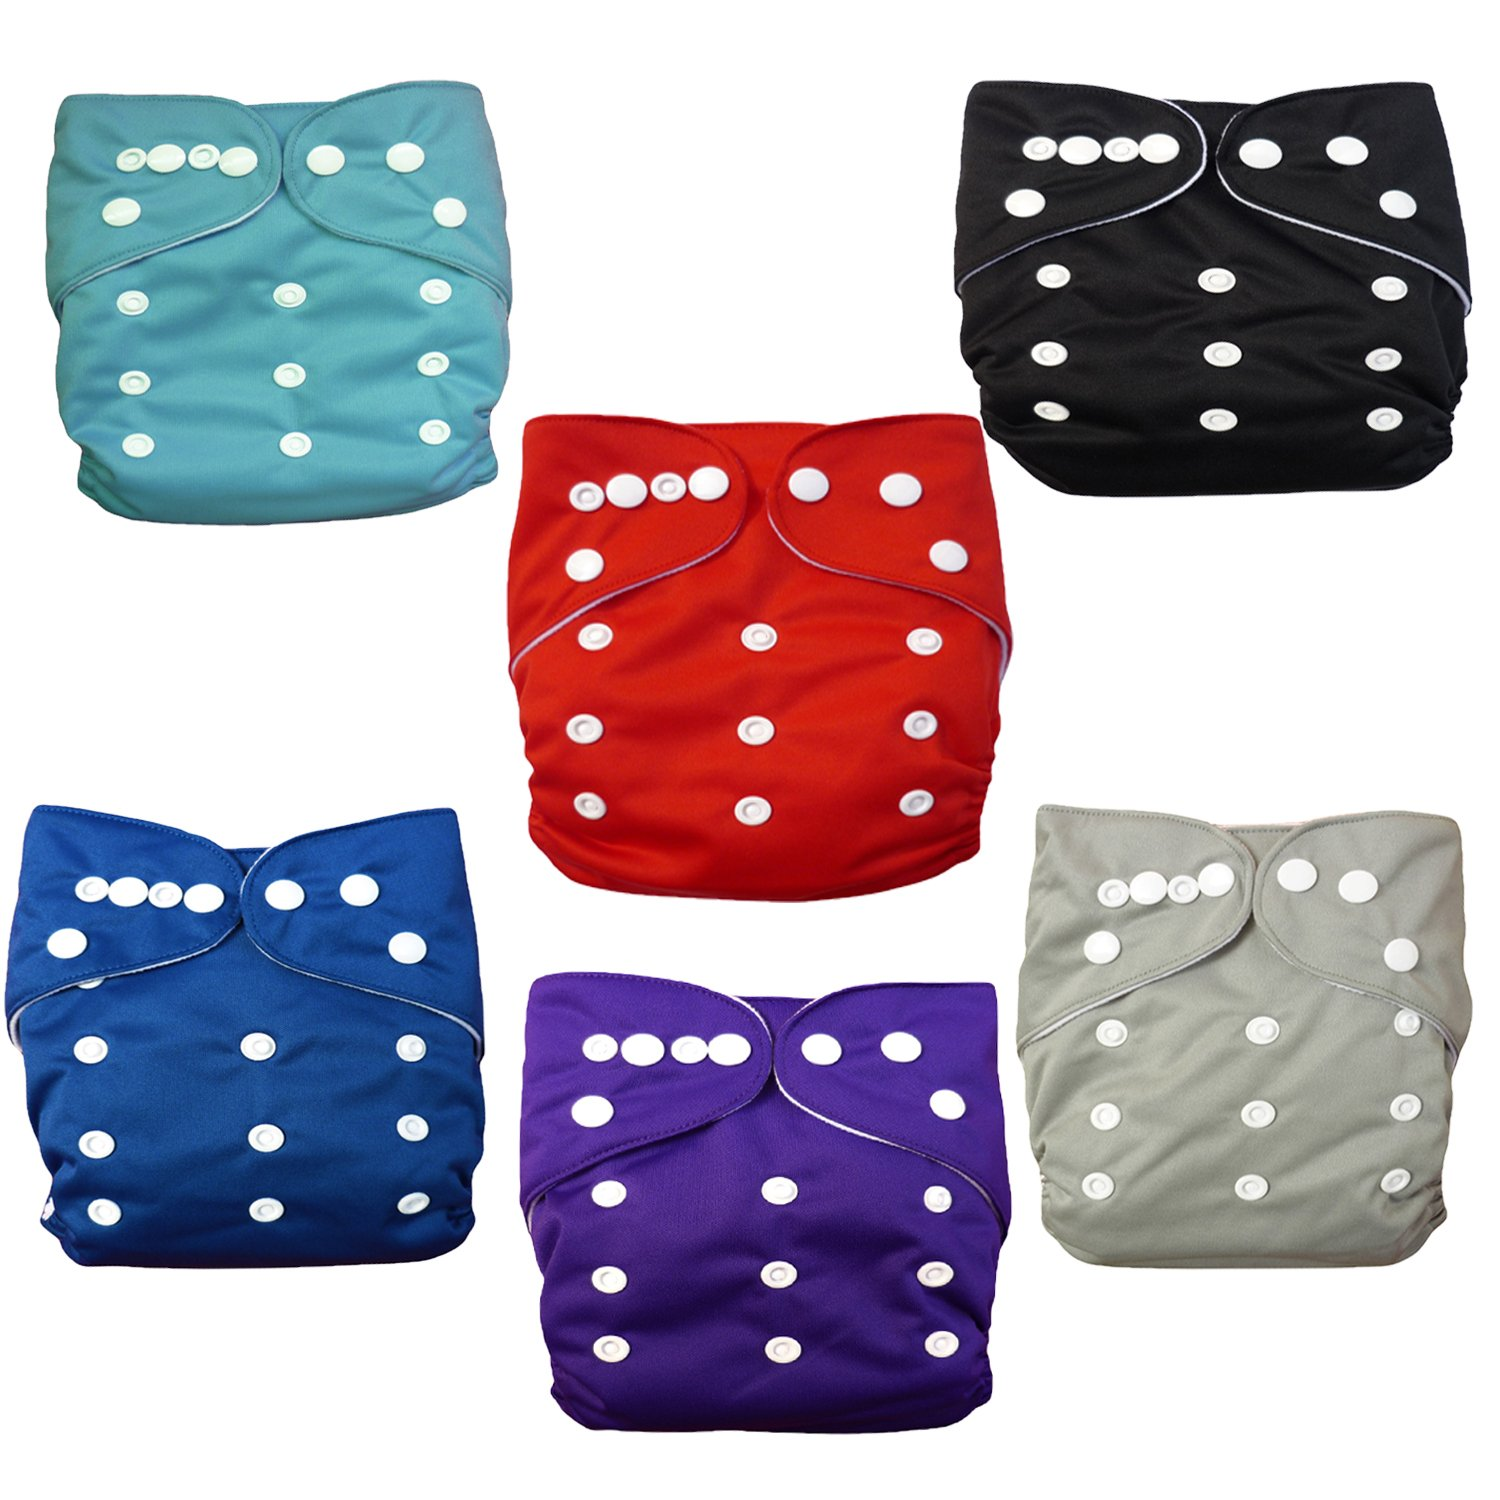 ALVABABY 6pcs Pack Pocket Cloth Diaper with 2 Inserts Each (Boy Color) 6BM99